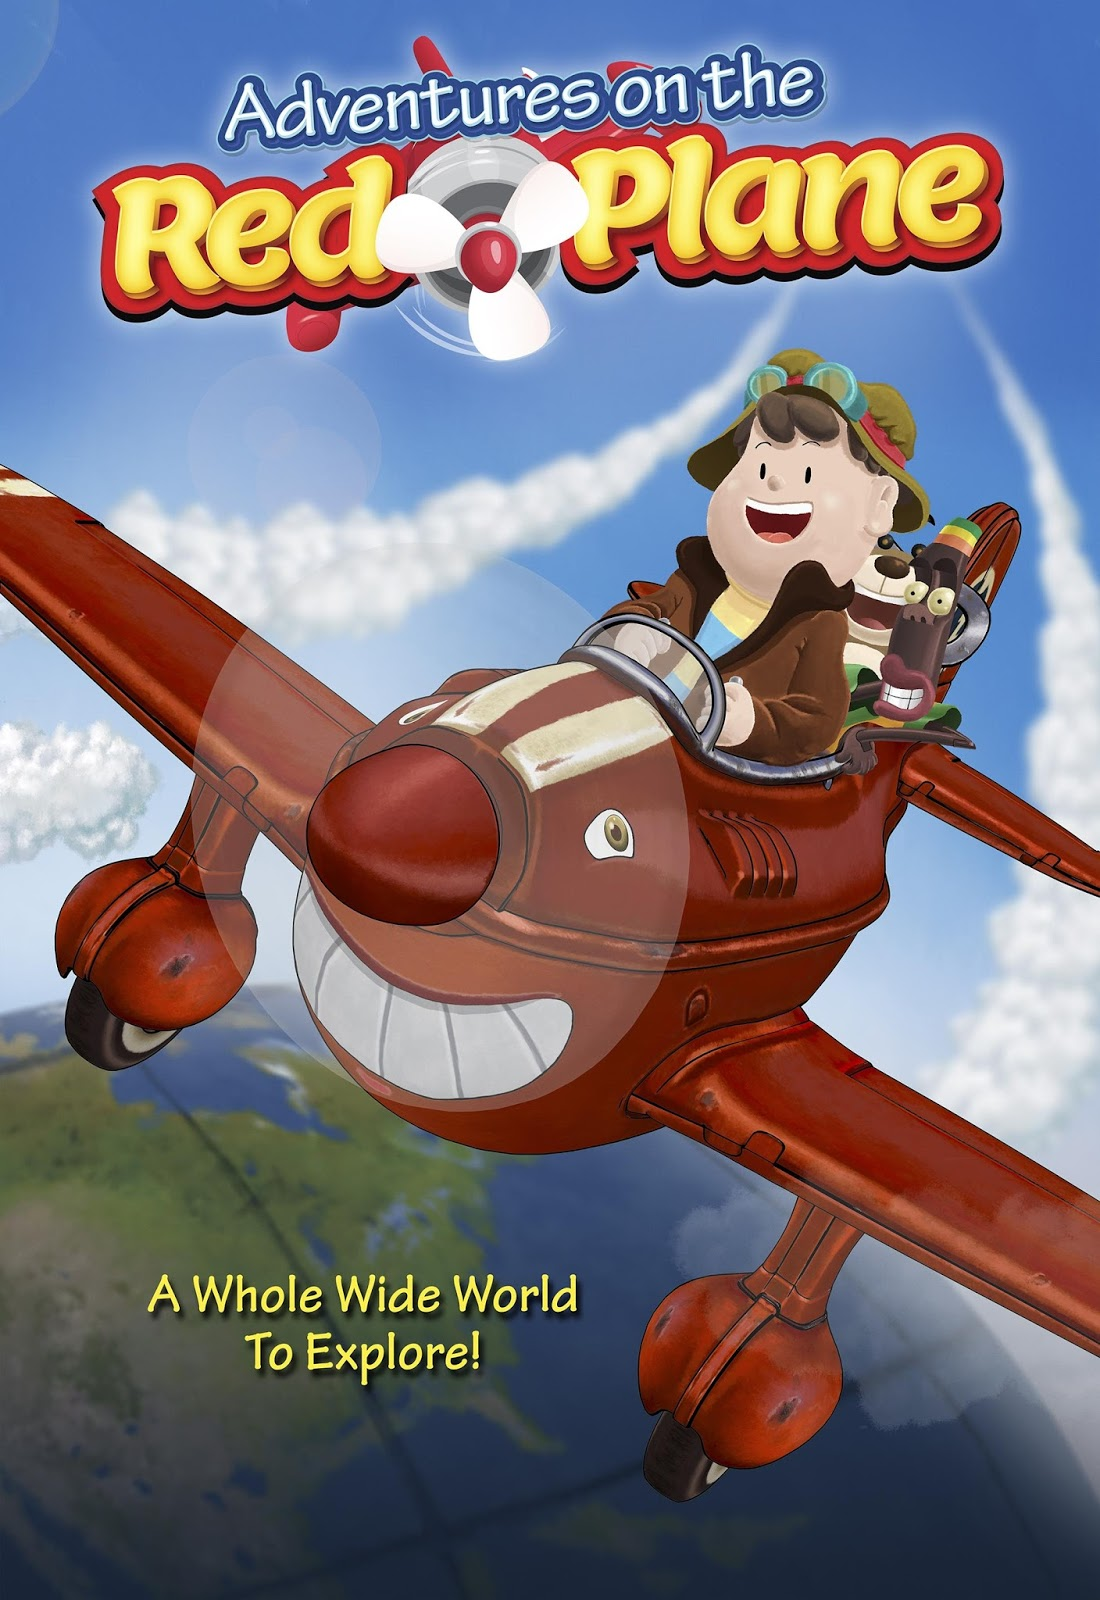 Adventures on the Red Plane 2015 - Full (HDRIP)